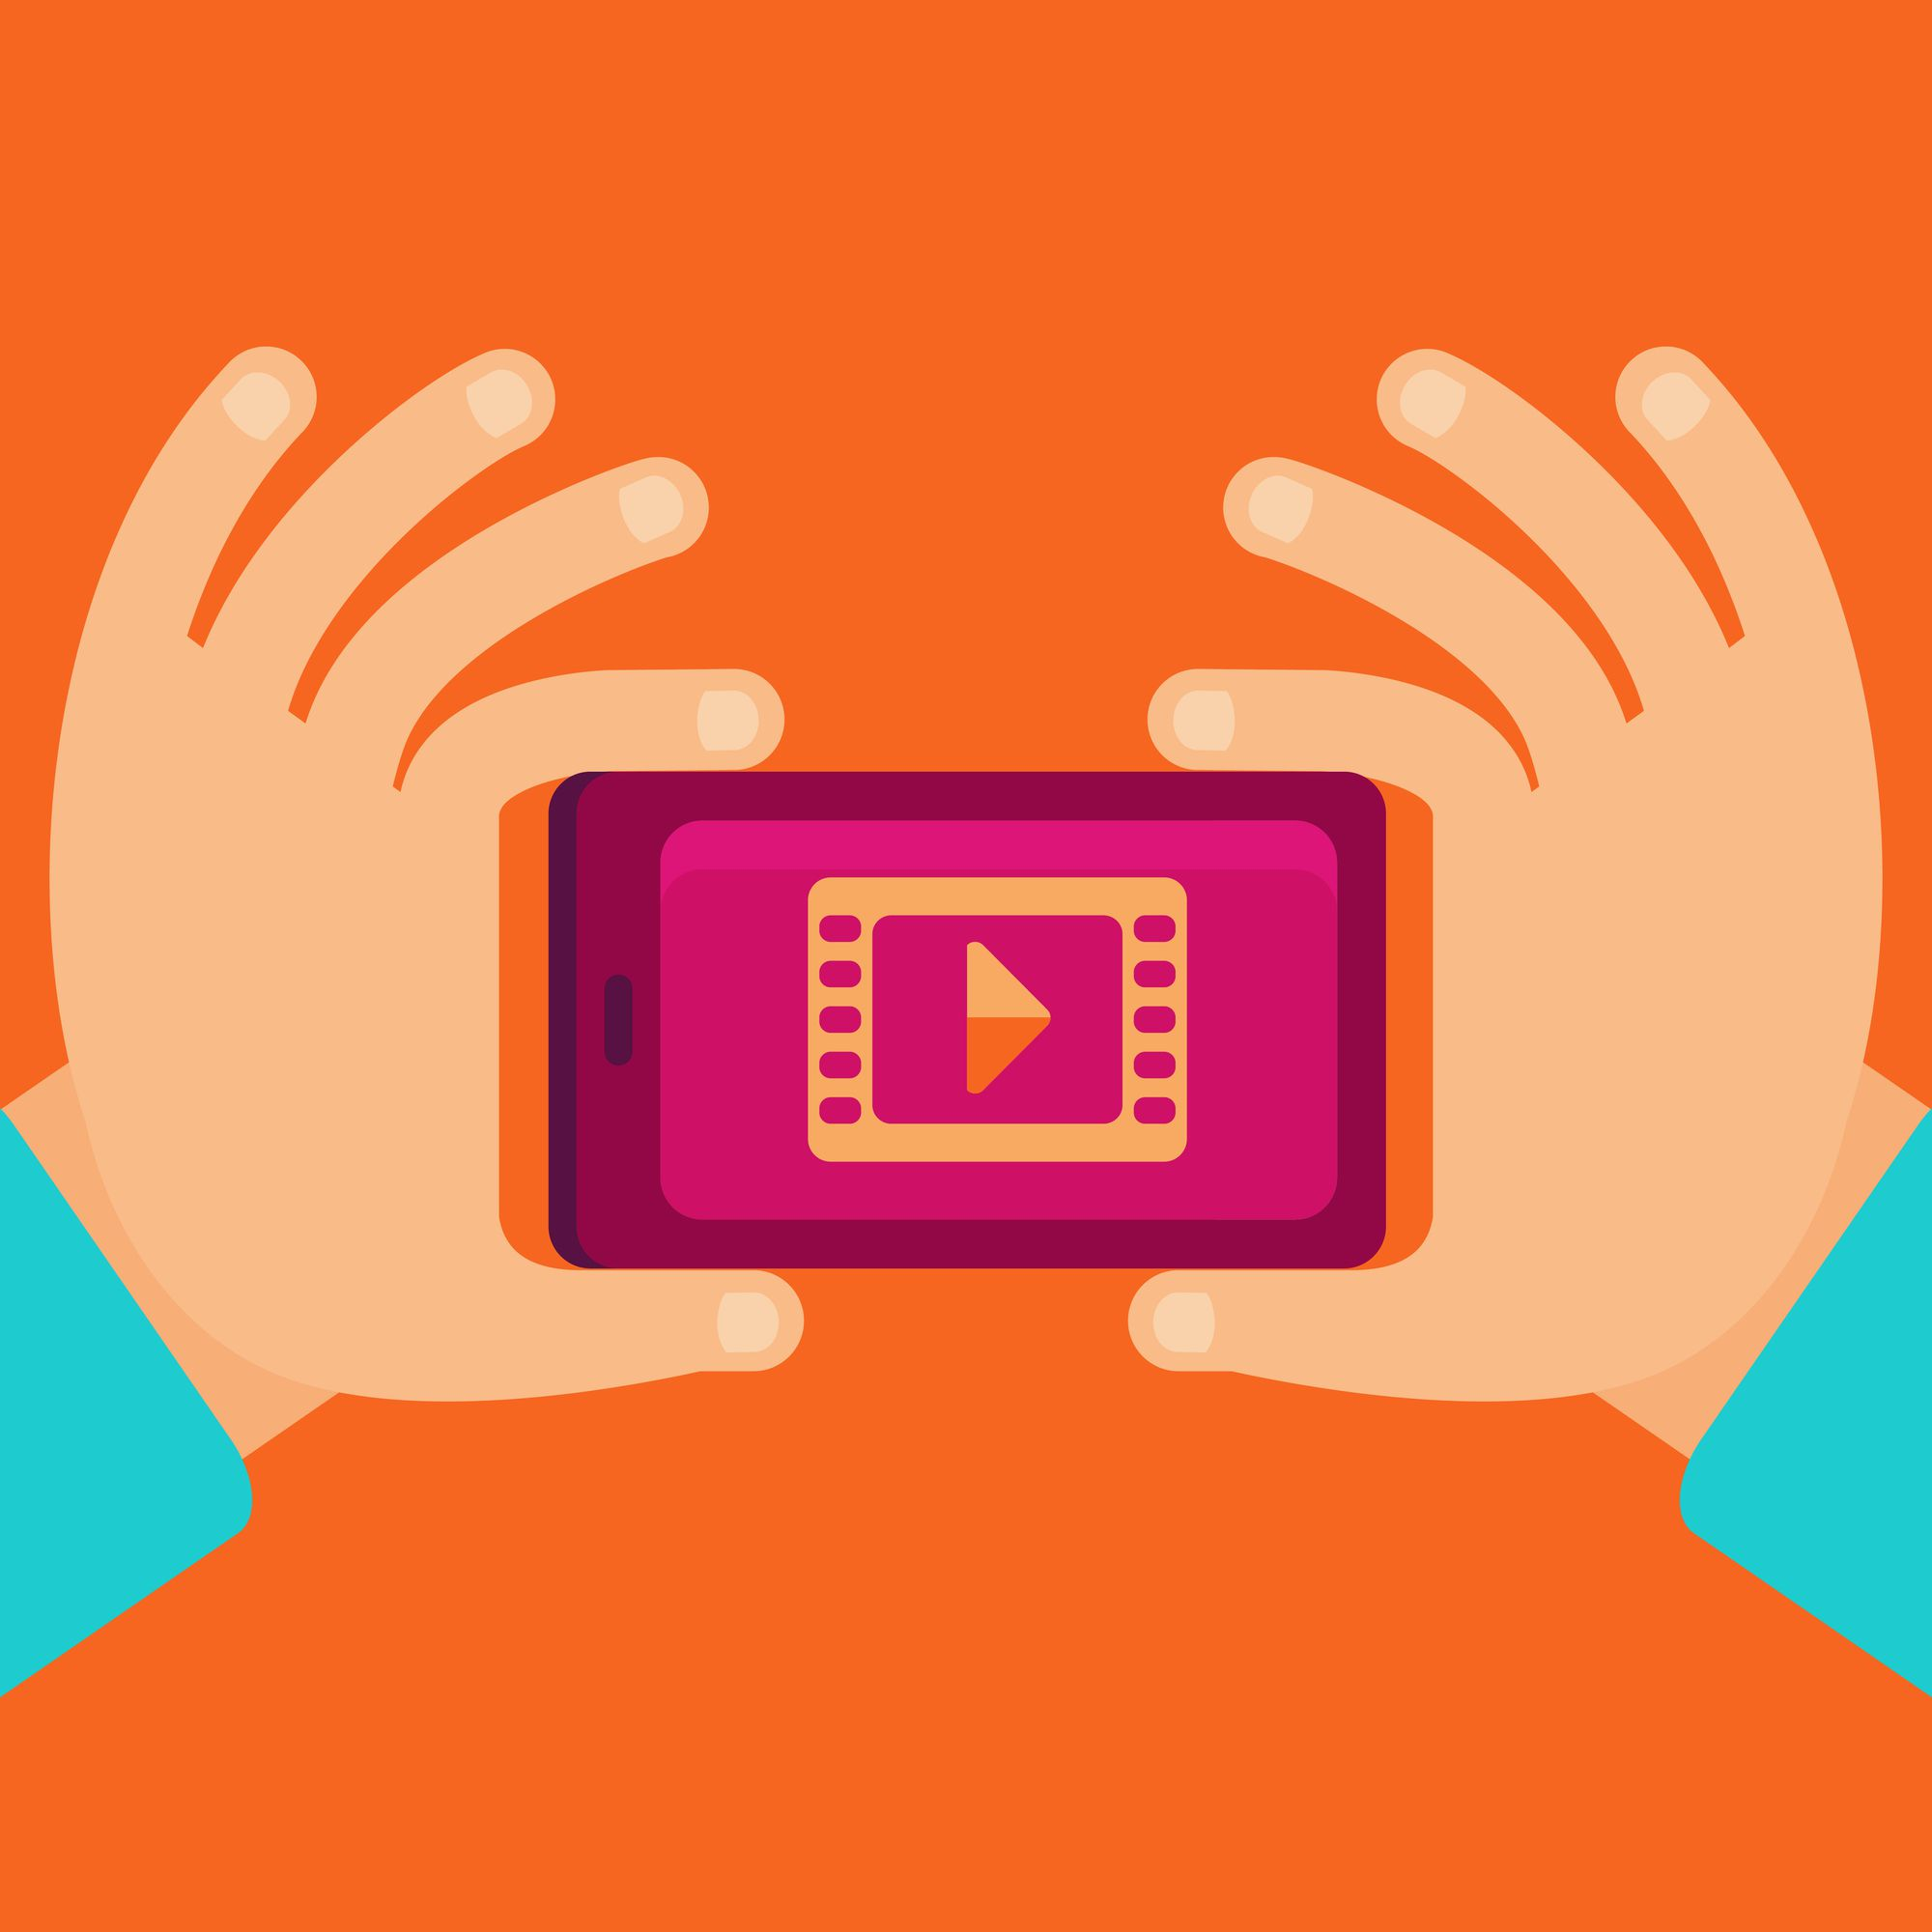 vector-graphic-of-hands-holding-a-phone-playing-a-video